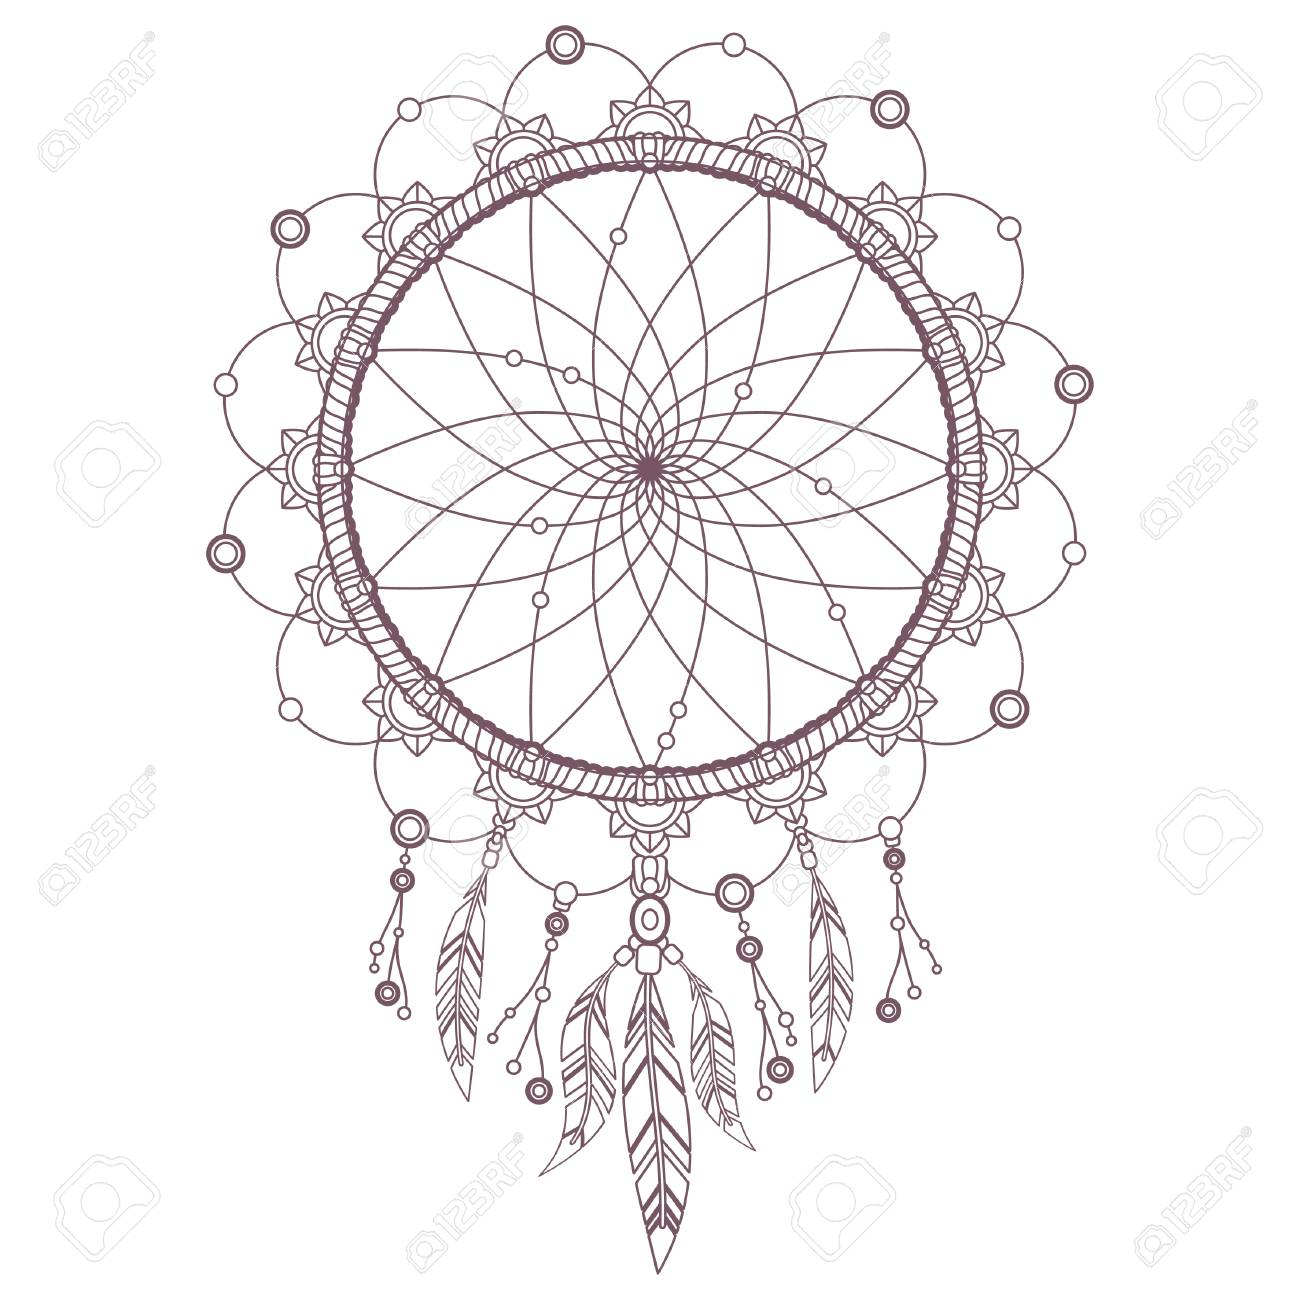 Dreamcatcher Mandala Design For Coloring Royalty Free Cliparts Vectors And Stock Illustration Image 102306305